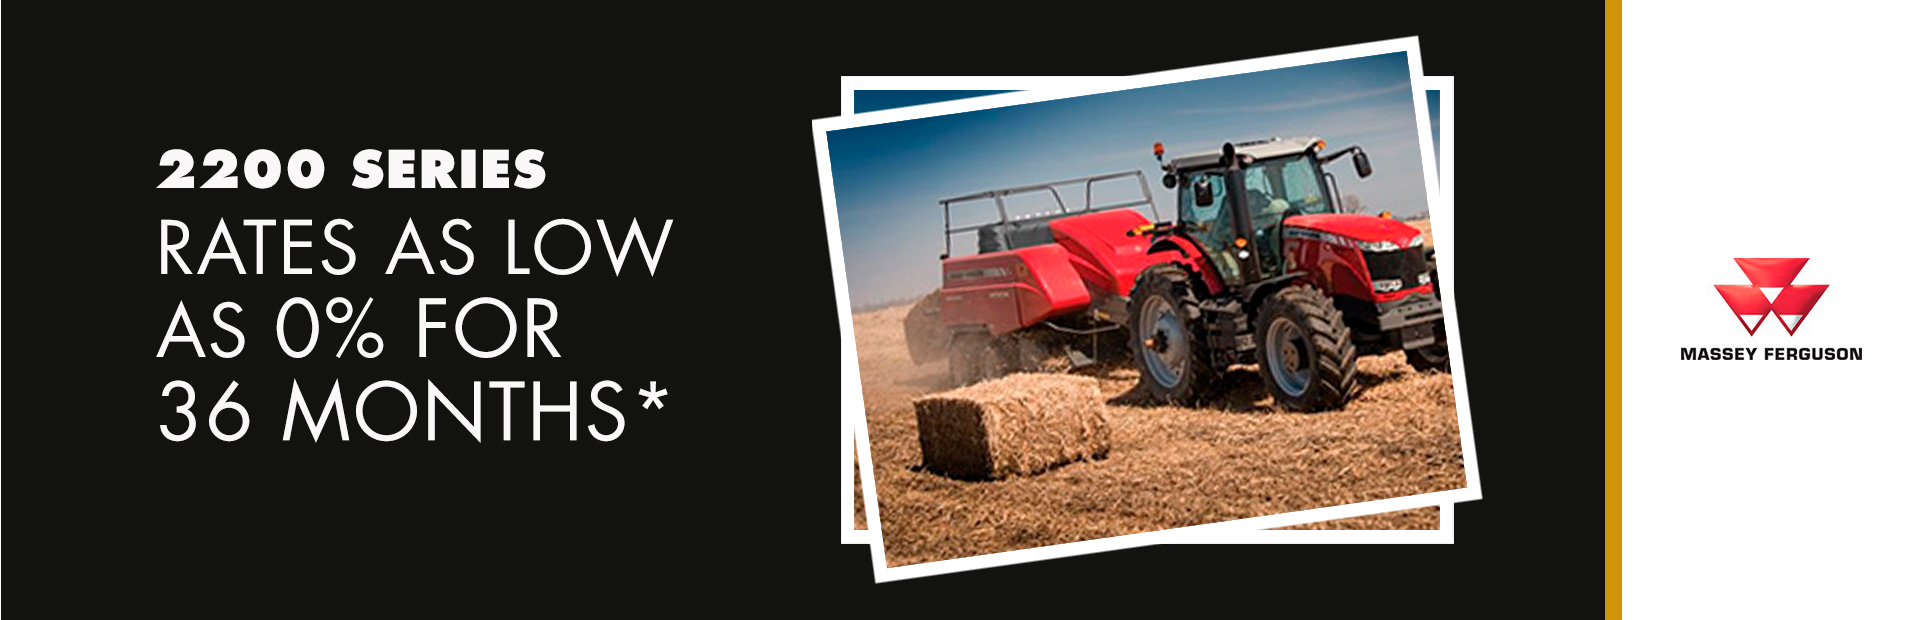 Massey Ferguson: 2200 Series - Rates as low as 0% for 36 Months